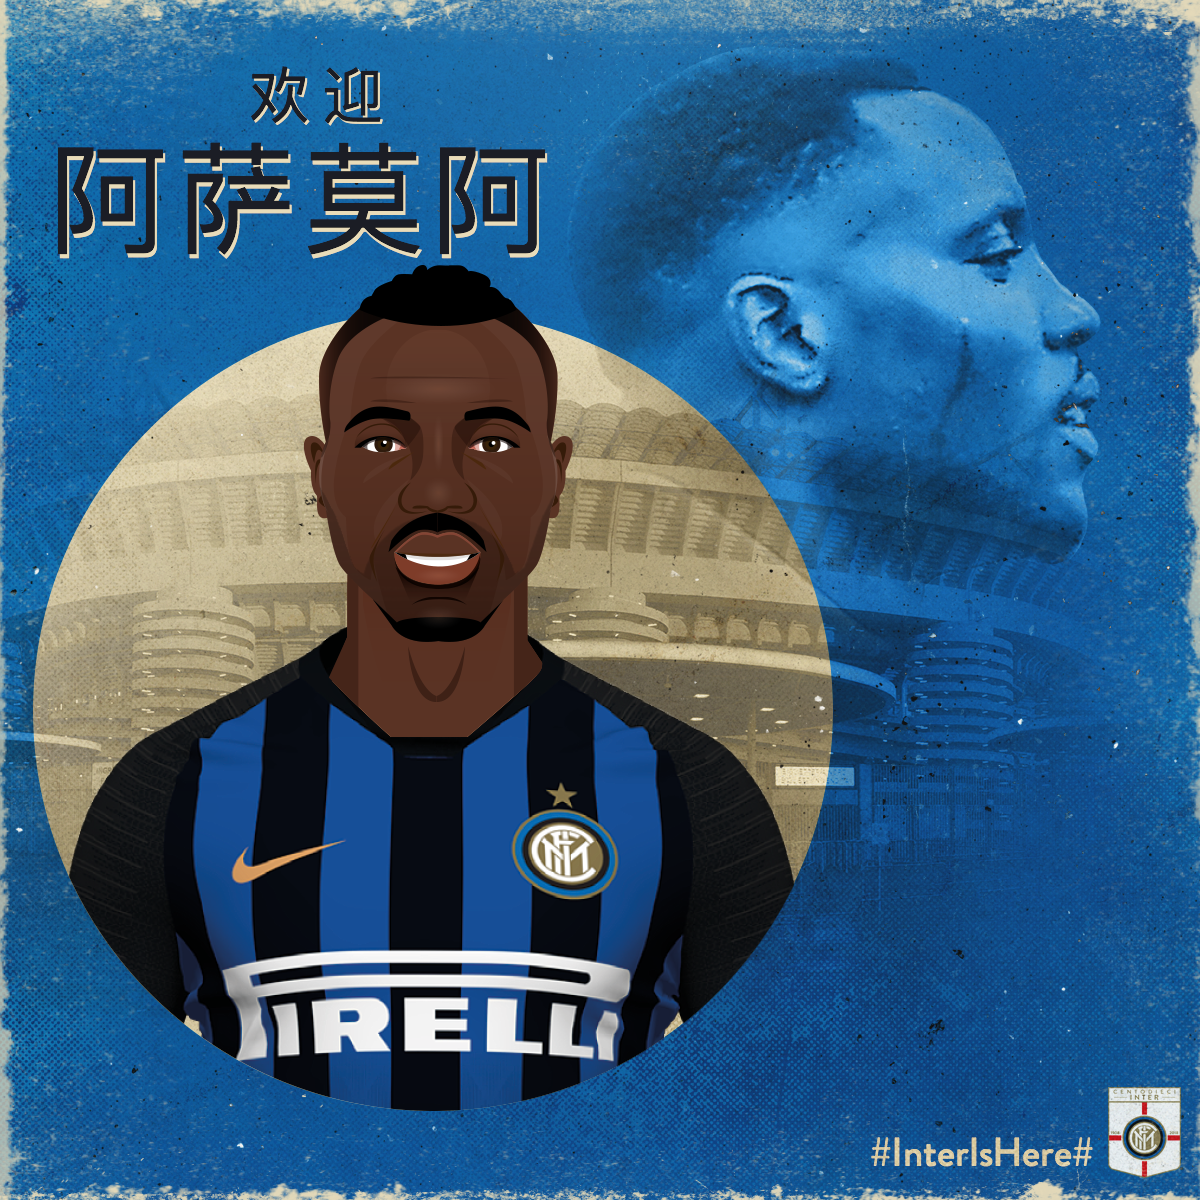 Kwadwo Asamoah    Signed on a free transfer from Serie A champions Juventus, Asamoah brings great quality to the Inter back line, plus experience at the highest level.